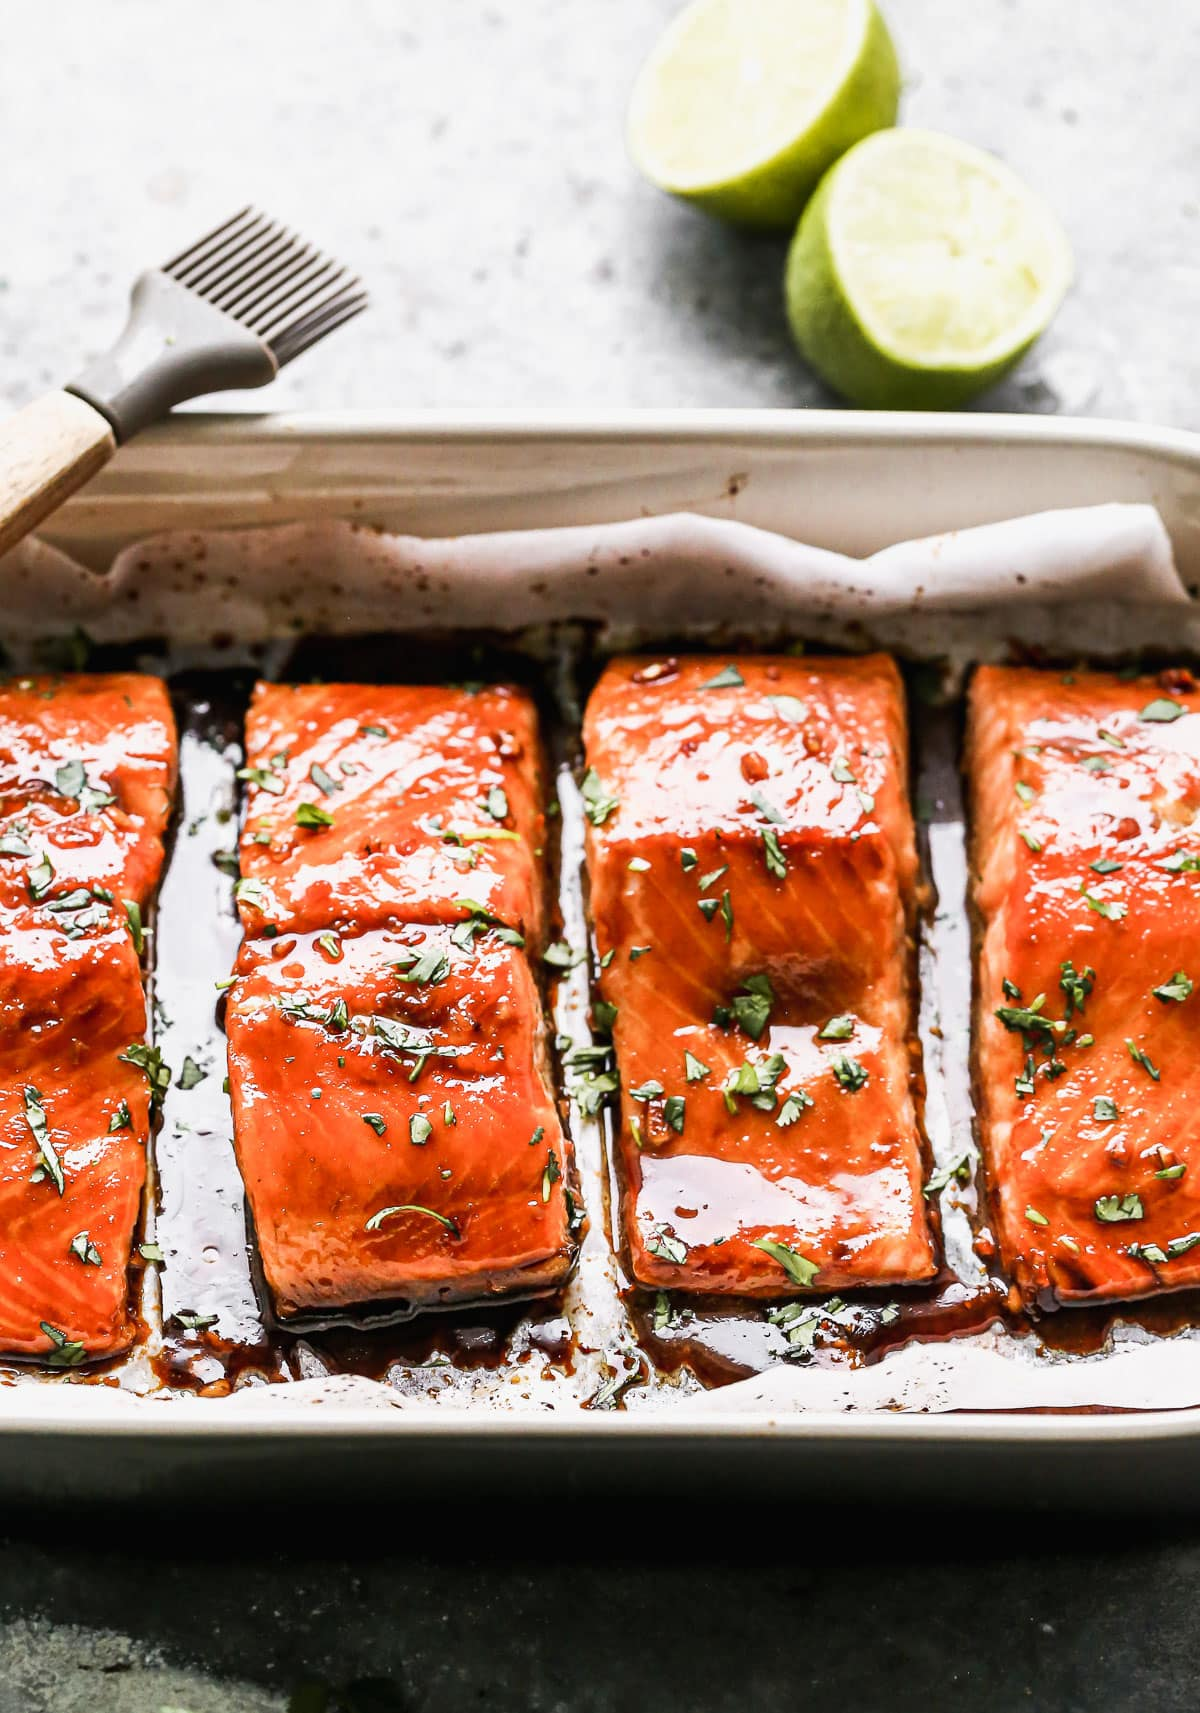 Honey glazed salmon fillets in a baking dish